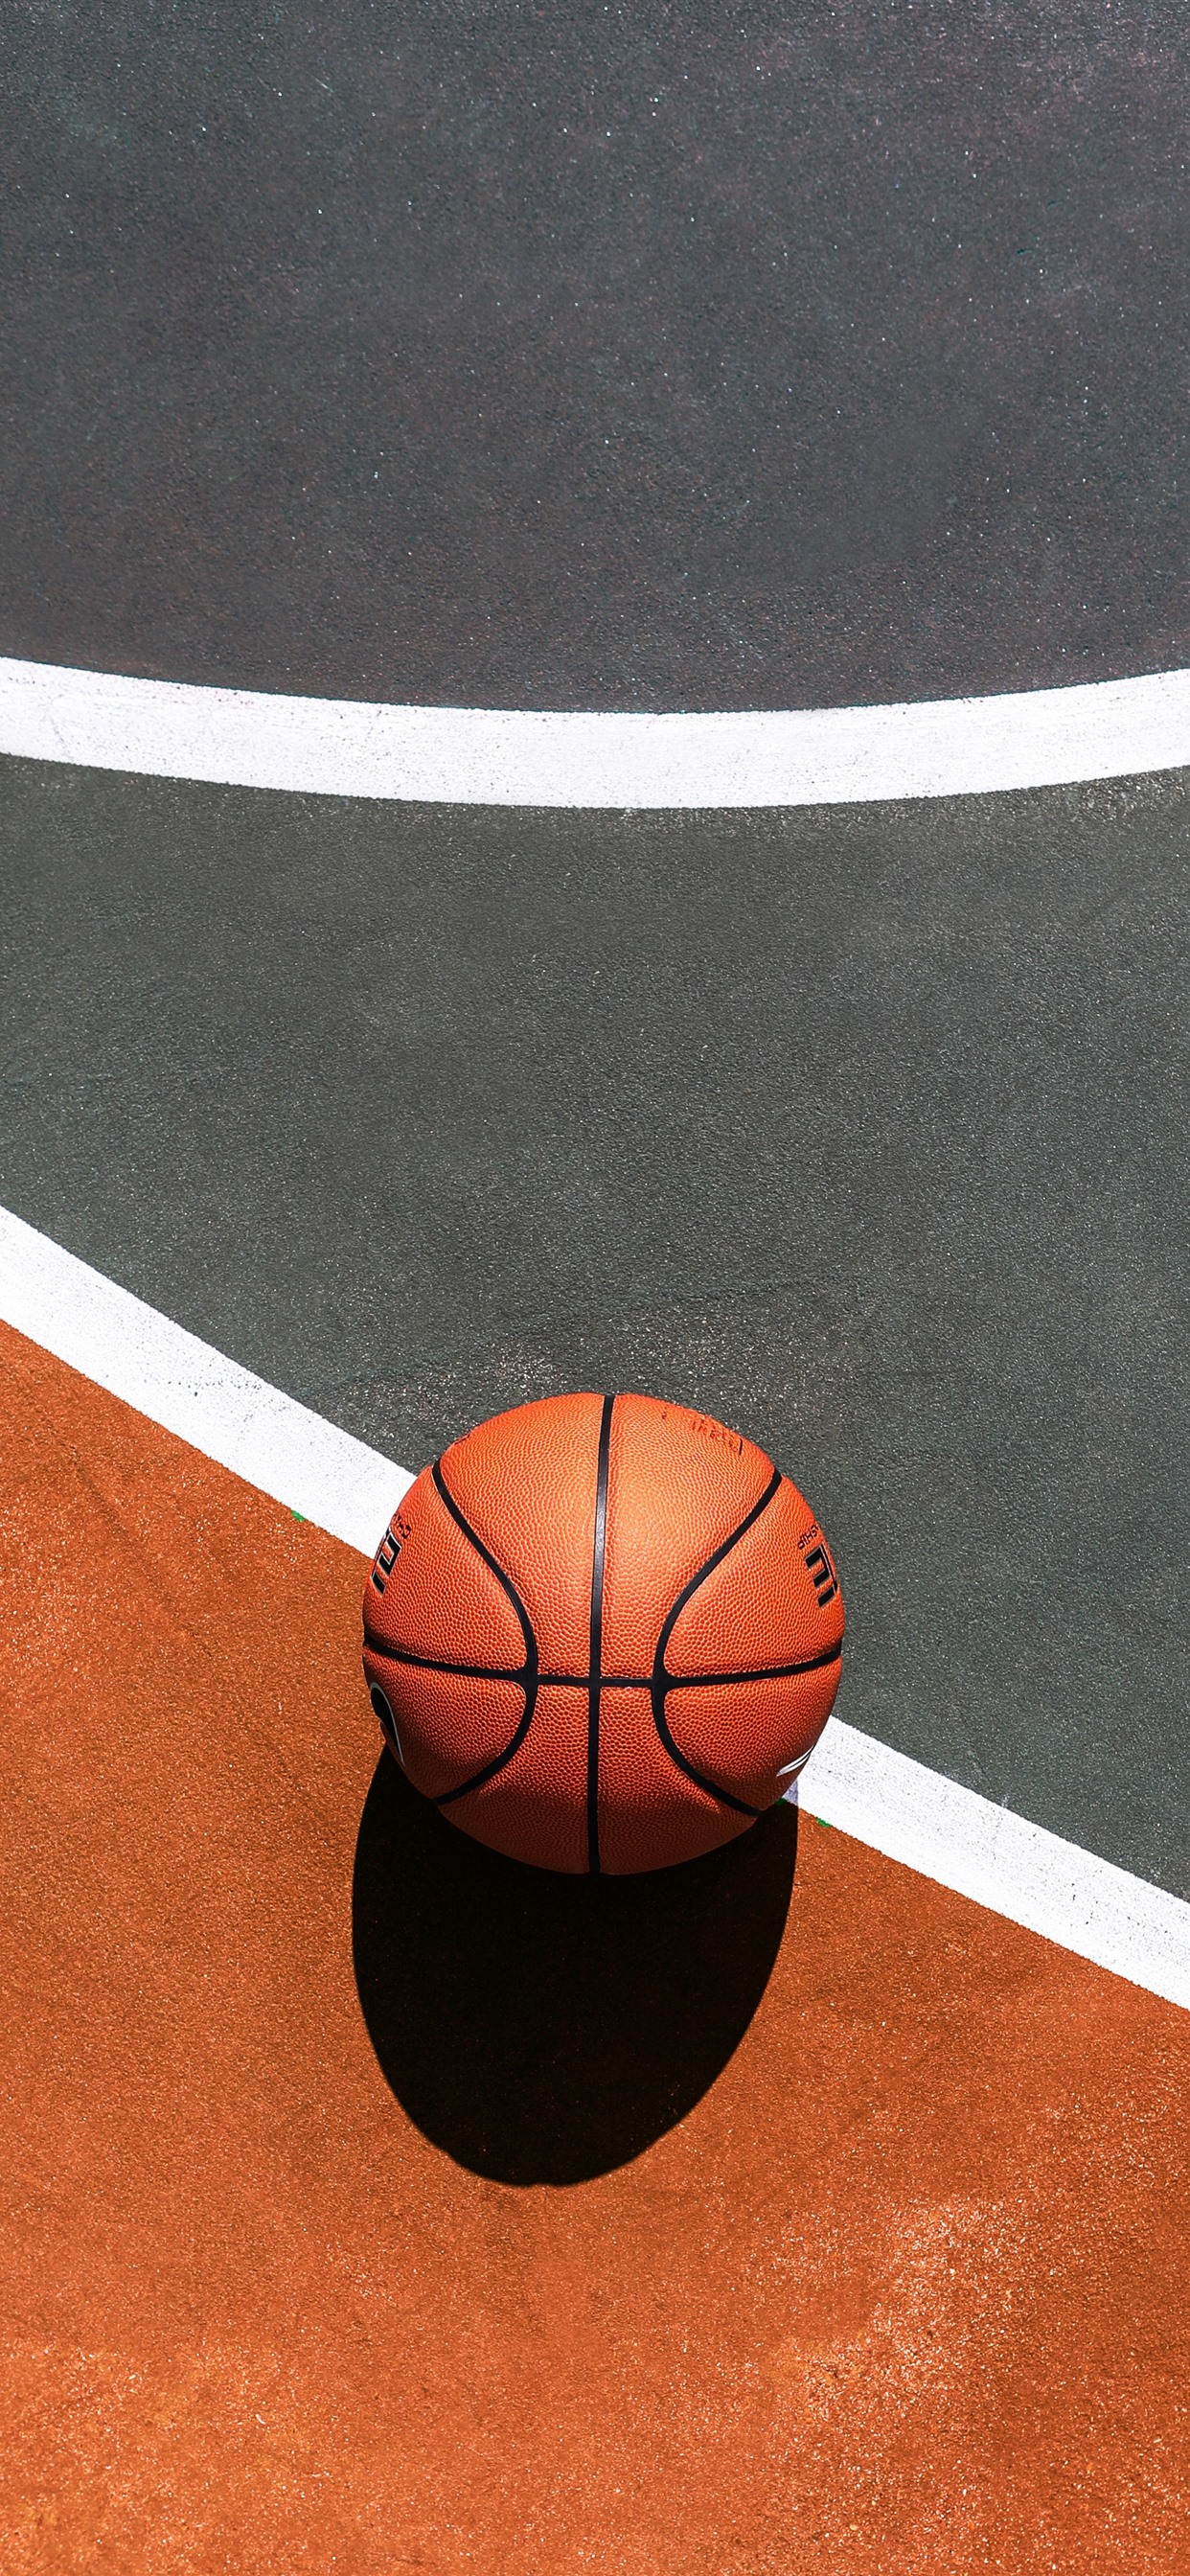 Basketball Ground 1242x2688 Iphone 11 Pro Xs Max Wallpaper